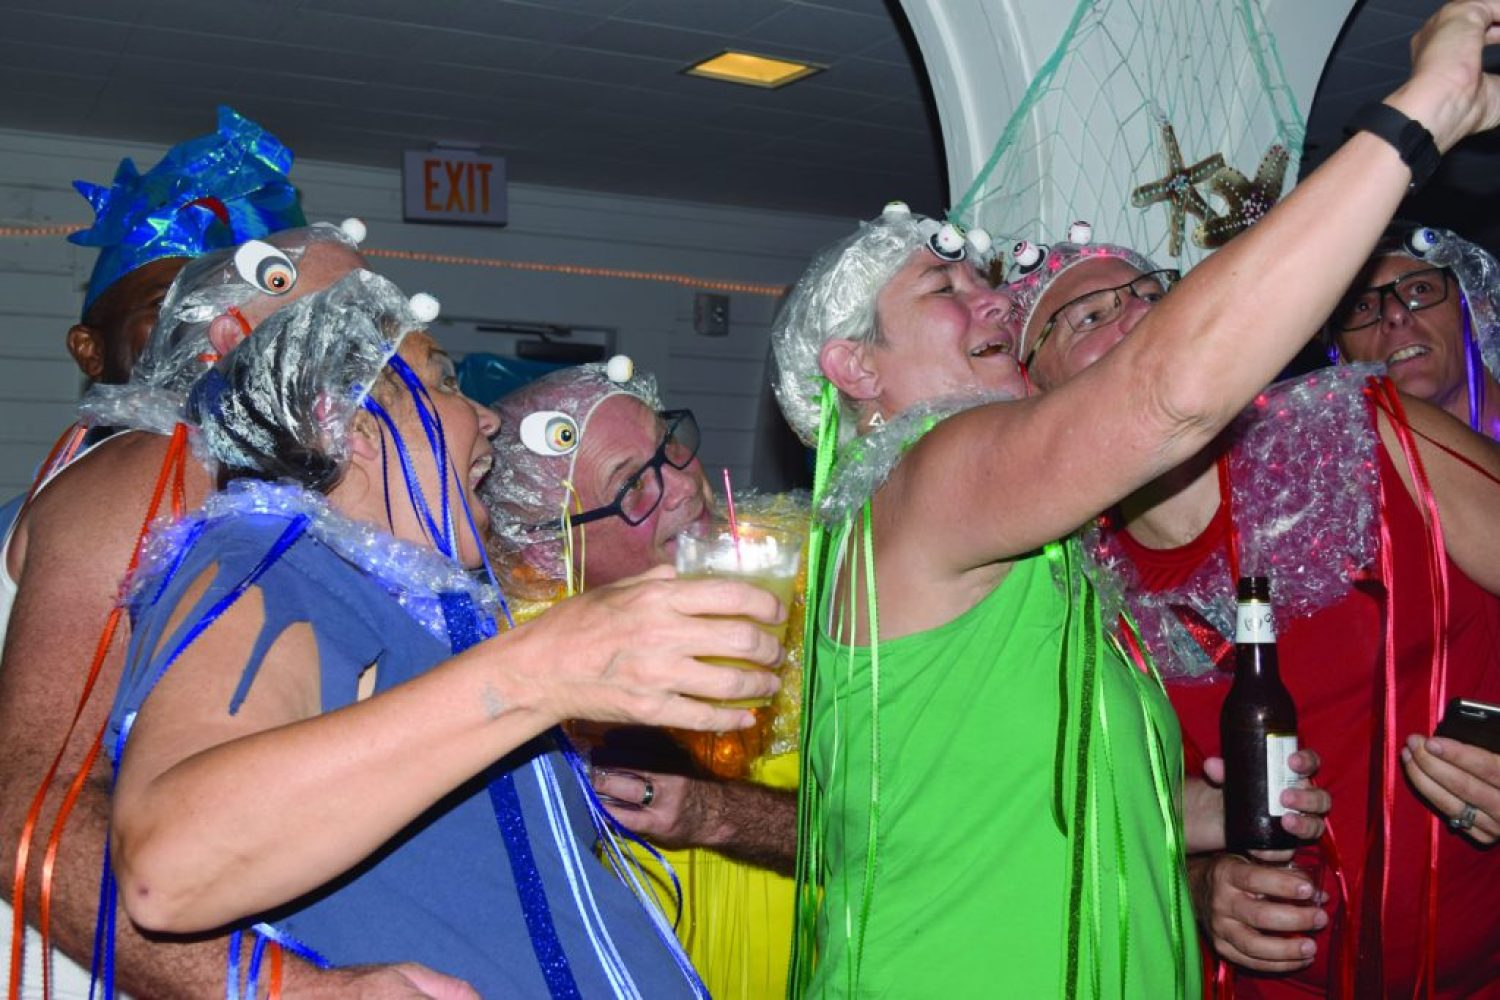 "Linda Breen of Gulfport, center, takes a group selfie of her ""pride"" of jellyfish at the Gecko Ball on Saturday, August 27. The pride included three couples, with each person wearing a different color of the rainbow. Linda's wife, Nora Reavis, left foreground, said they spent the entire afternoon making their costumes, which consisted of bubble wrap, ribbon, LED lights and funny eyeballs. Reavis noted that a group of jellyfish is really called a ""swarm"" but that the group preferred to call themselves a pride."